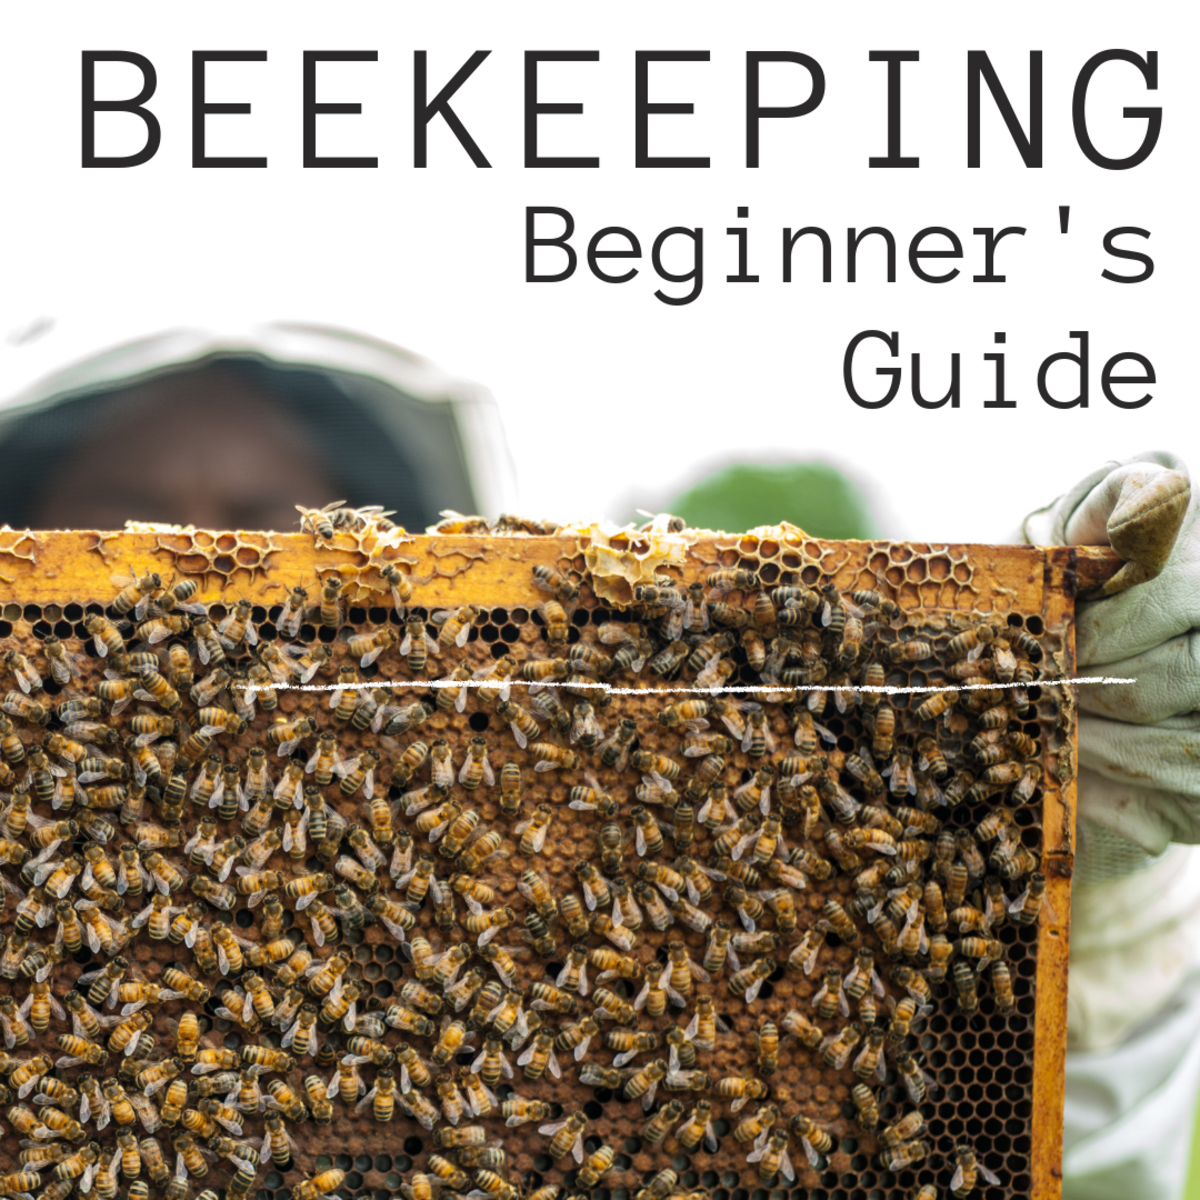 Beekeeping Beginner's Guide: How to Set Up a Beehive